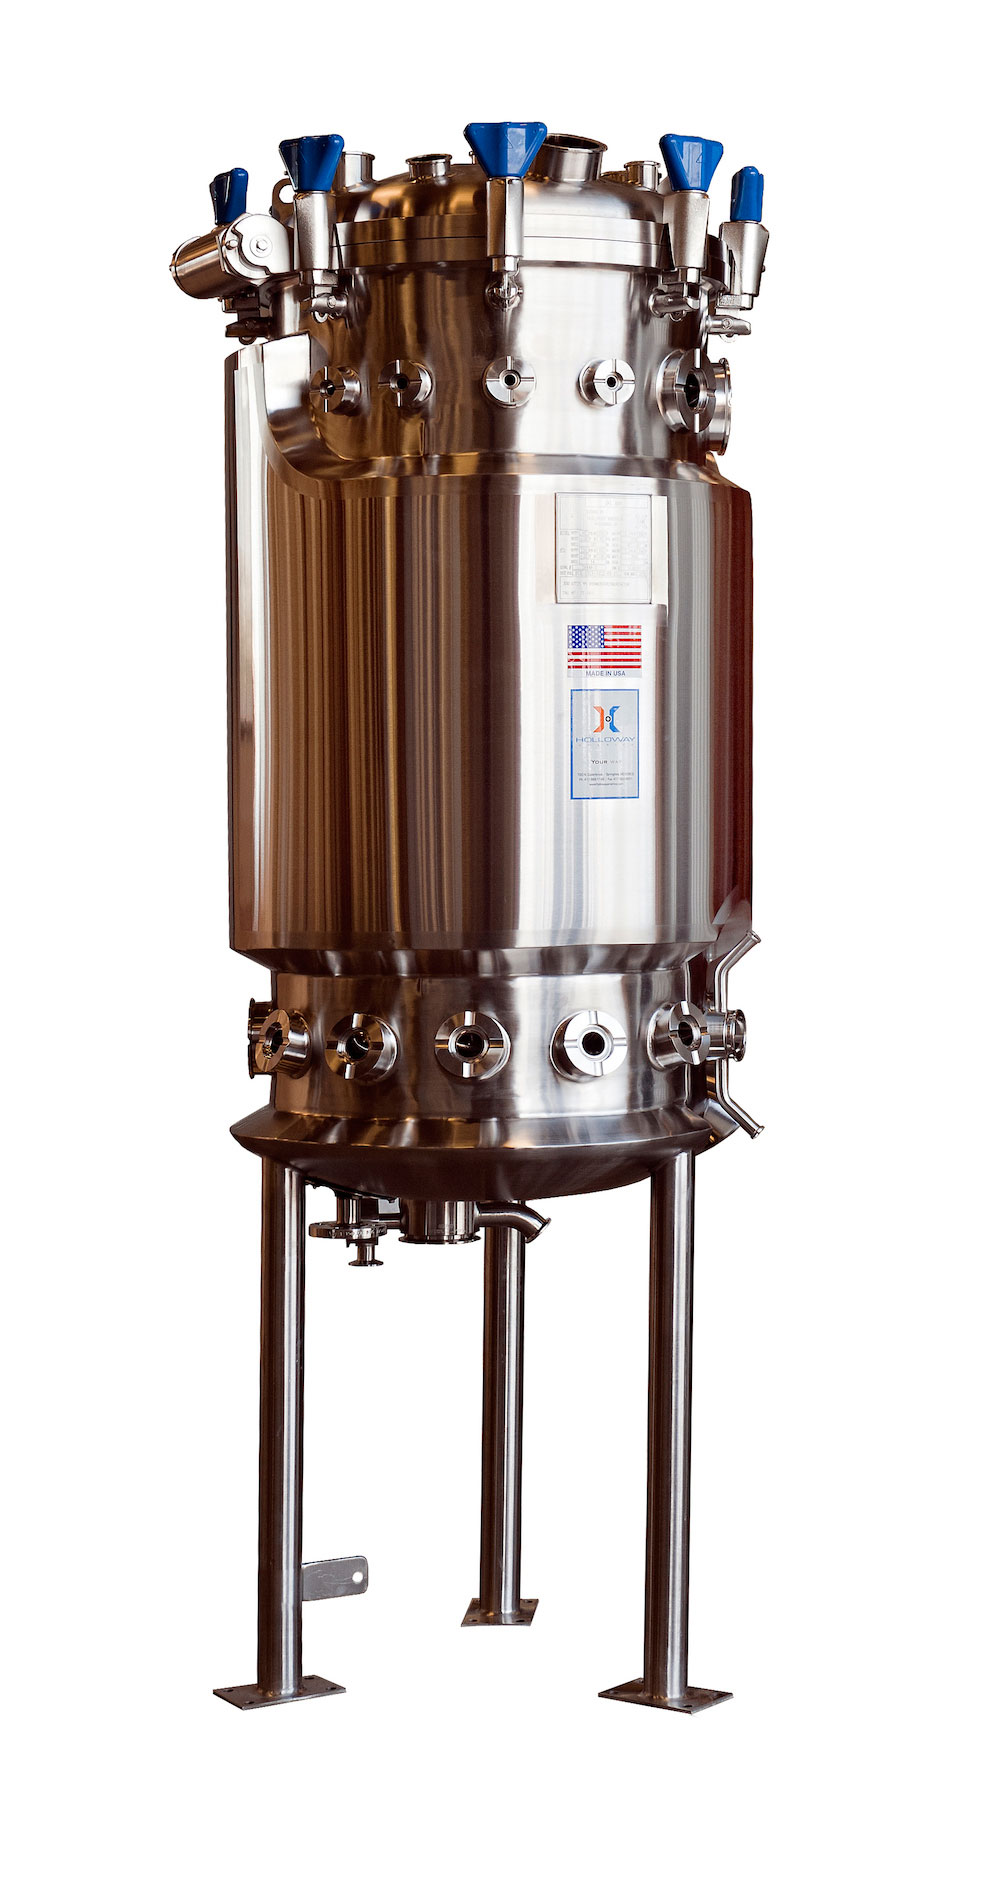 Our batch reactor design sets this stainless steel fermenter apart.